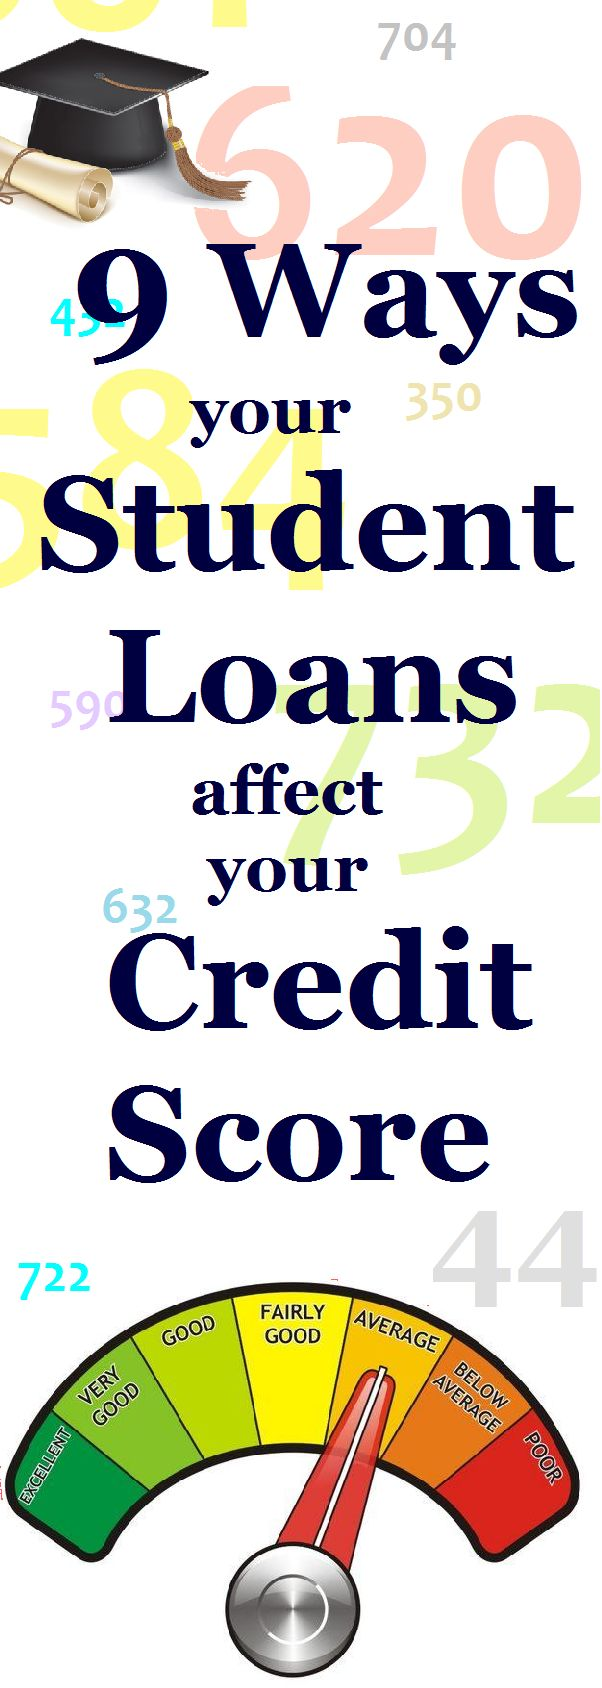 how to fix your credit score fast for free